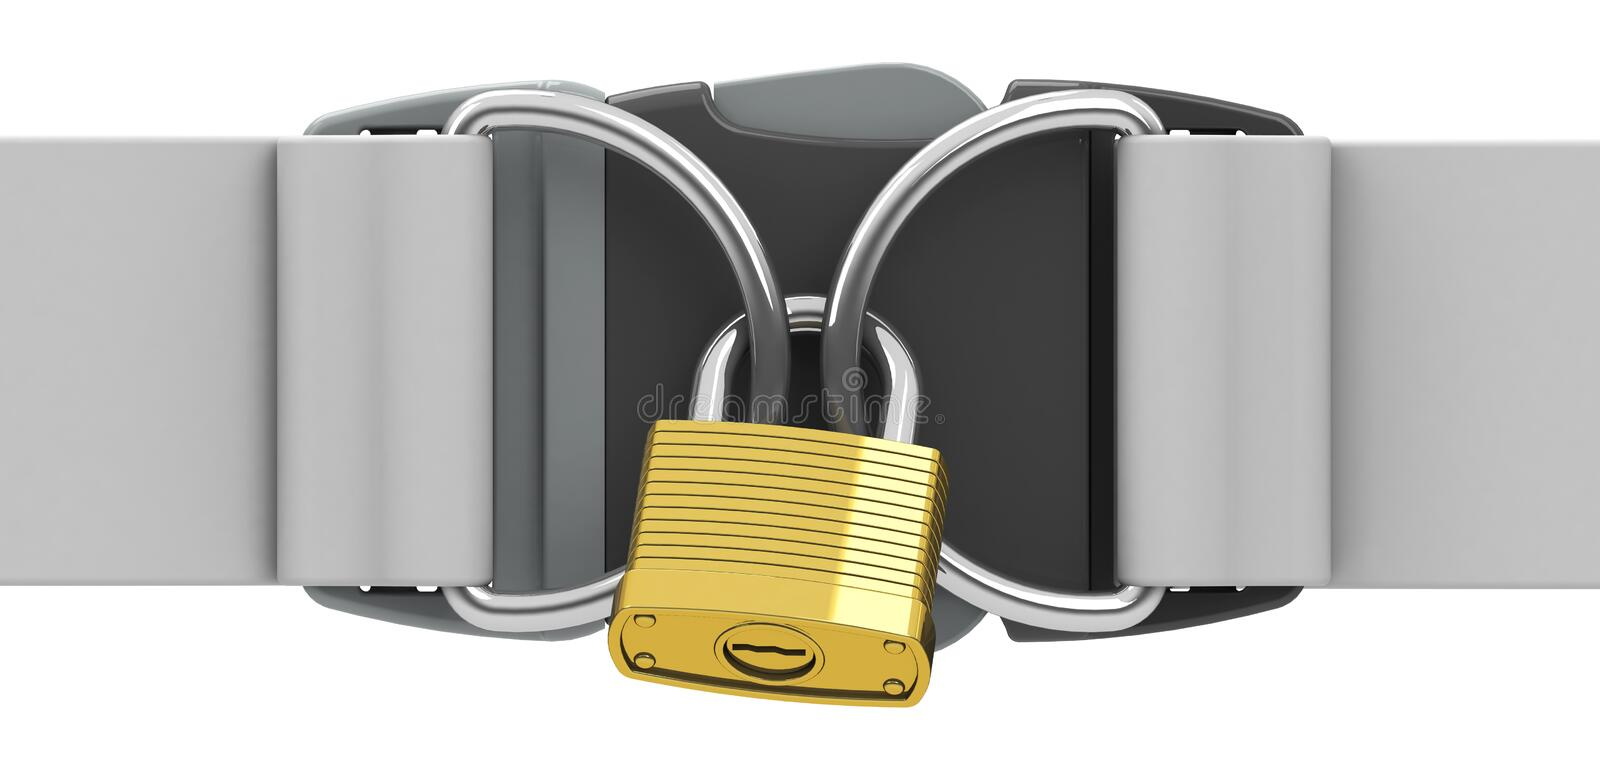 Download The Padlock Stock Illustration - Image: 39607560